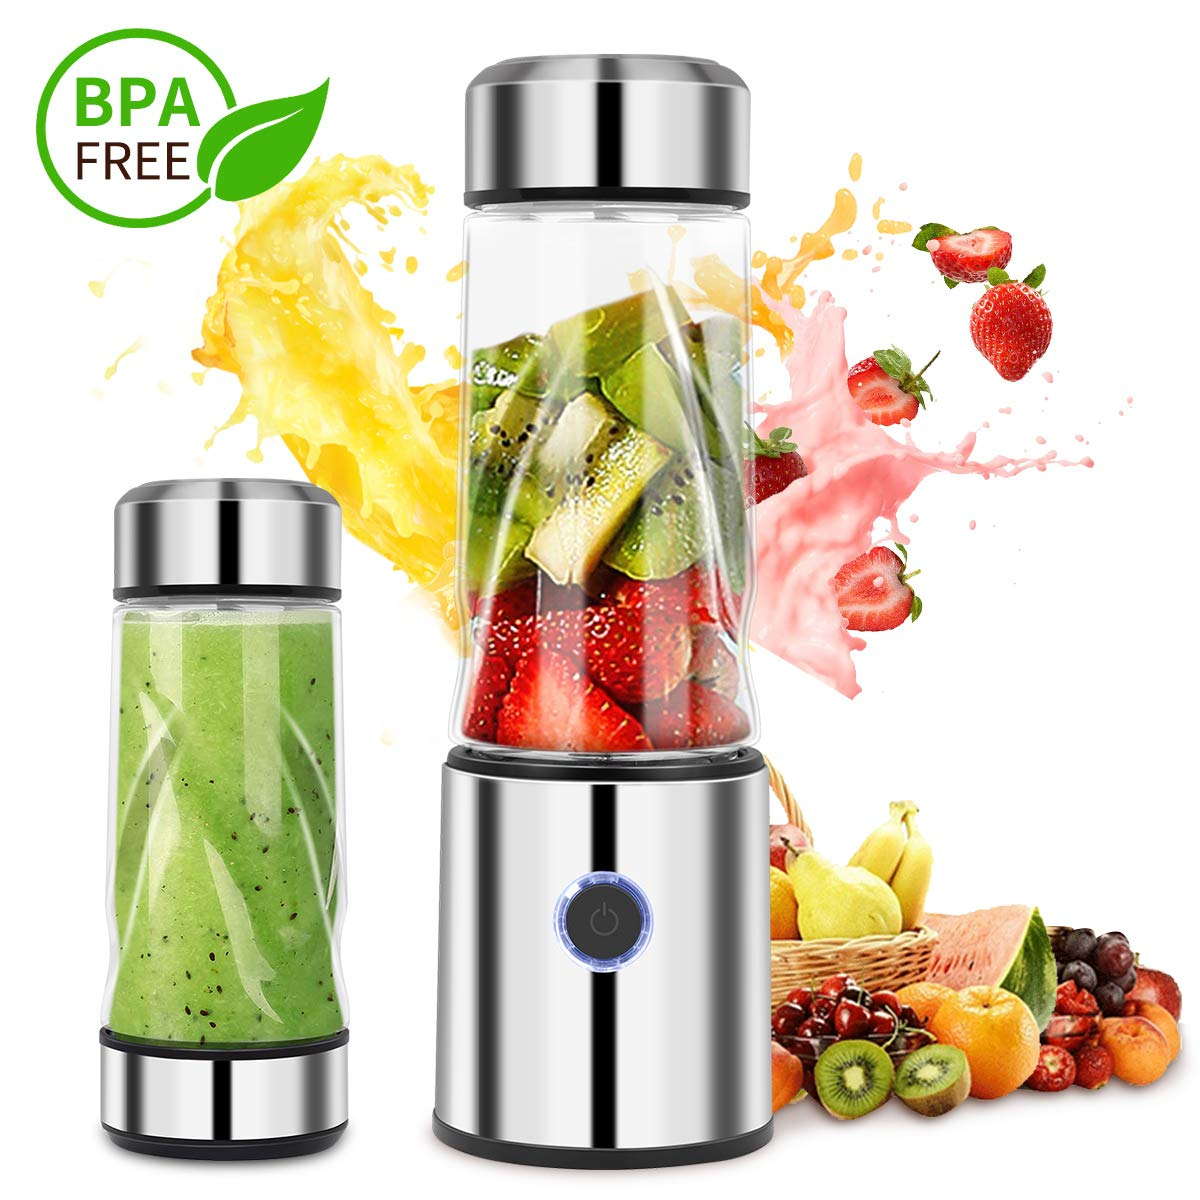 iFedio Personal Portable Blender Smoothie USB Rechargeable Quiet Mini Mixer Juicer Travel,Sports, Home Food-Grade 14(oz) Silver by iFedio